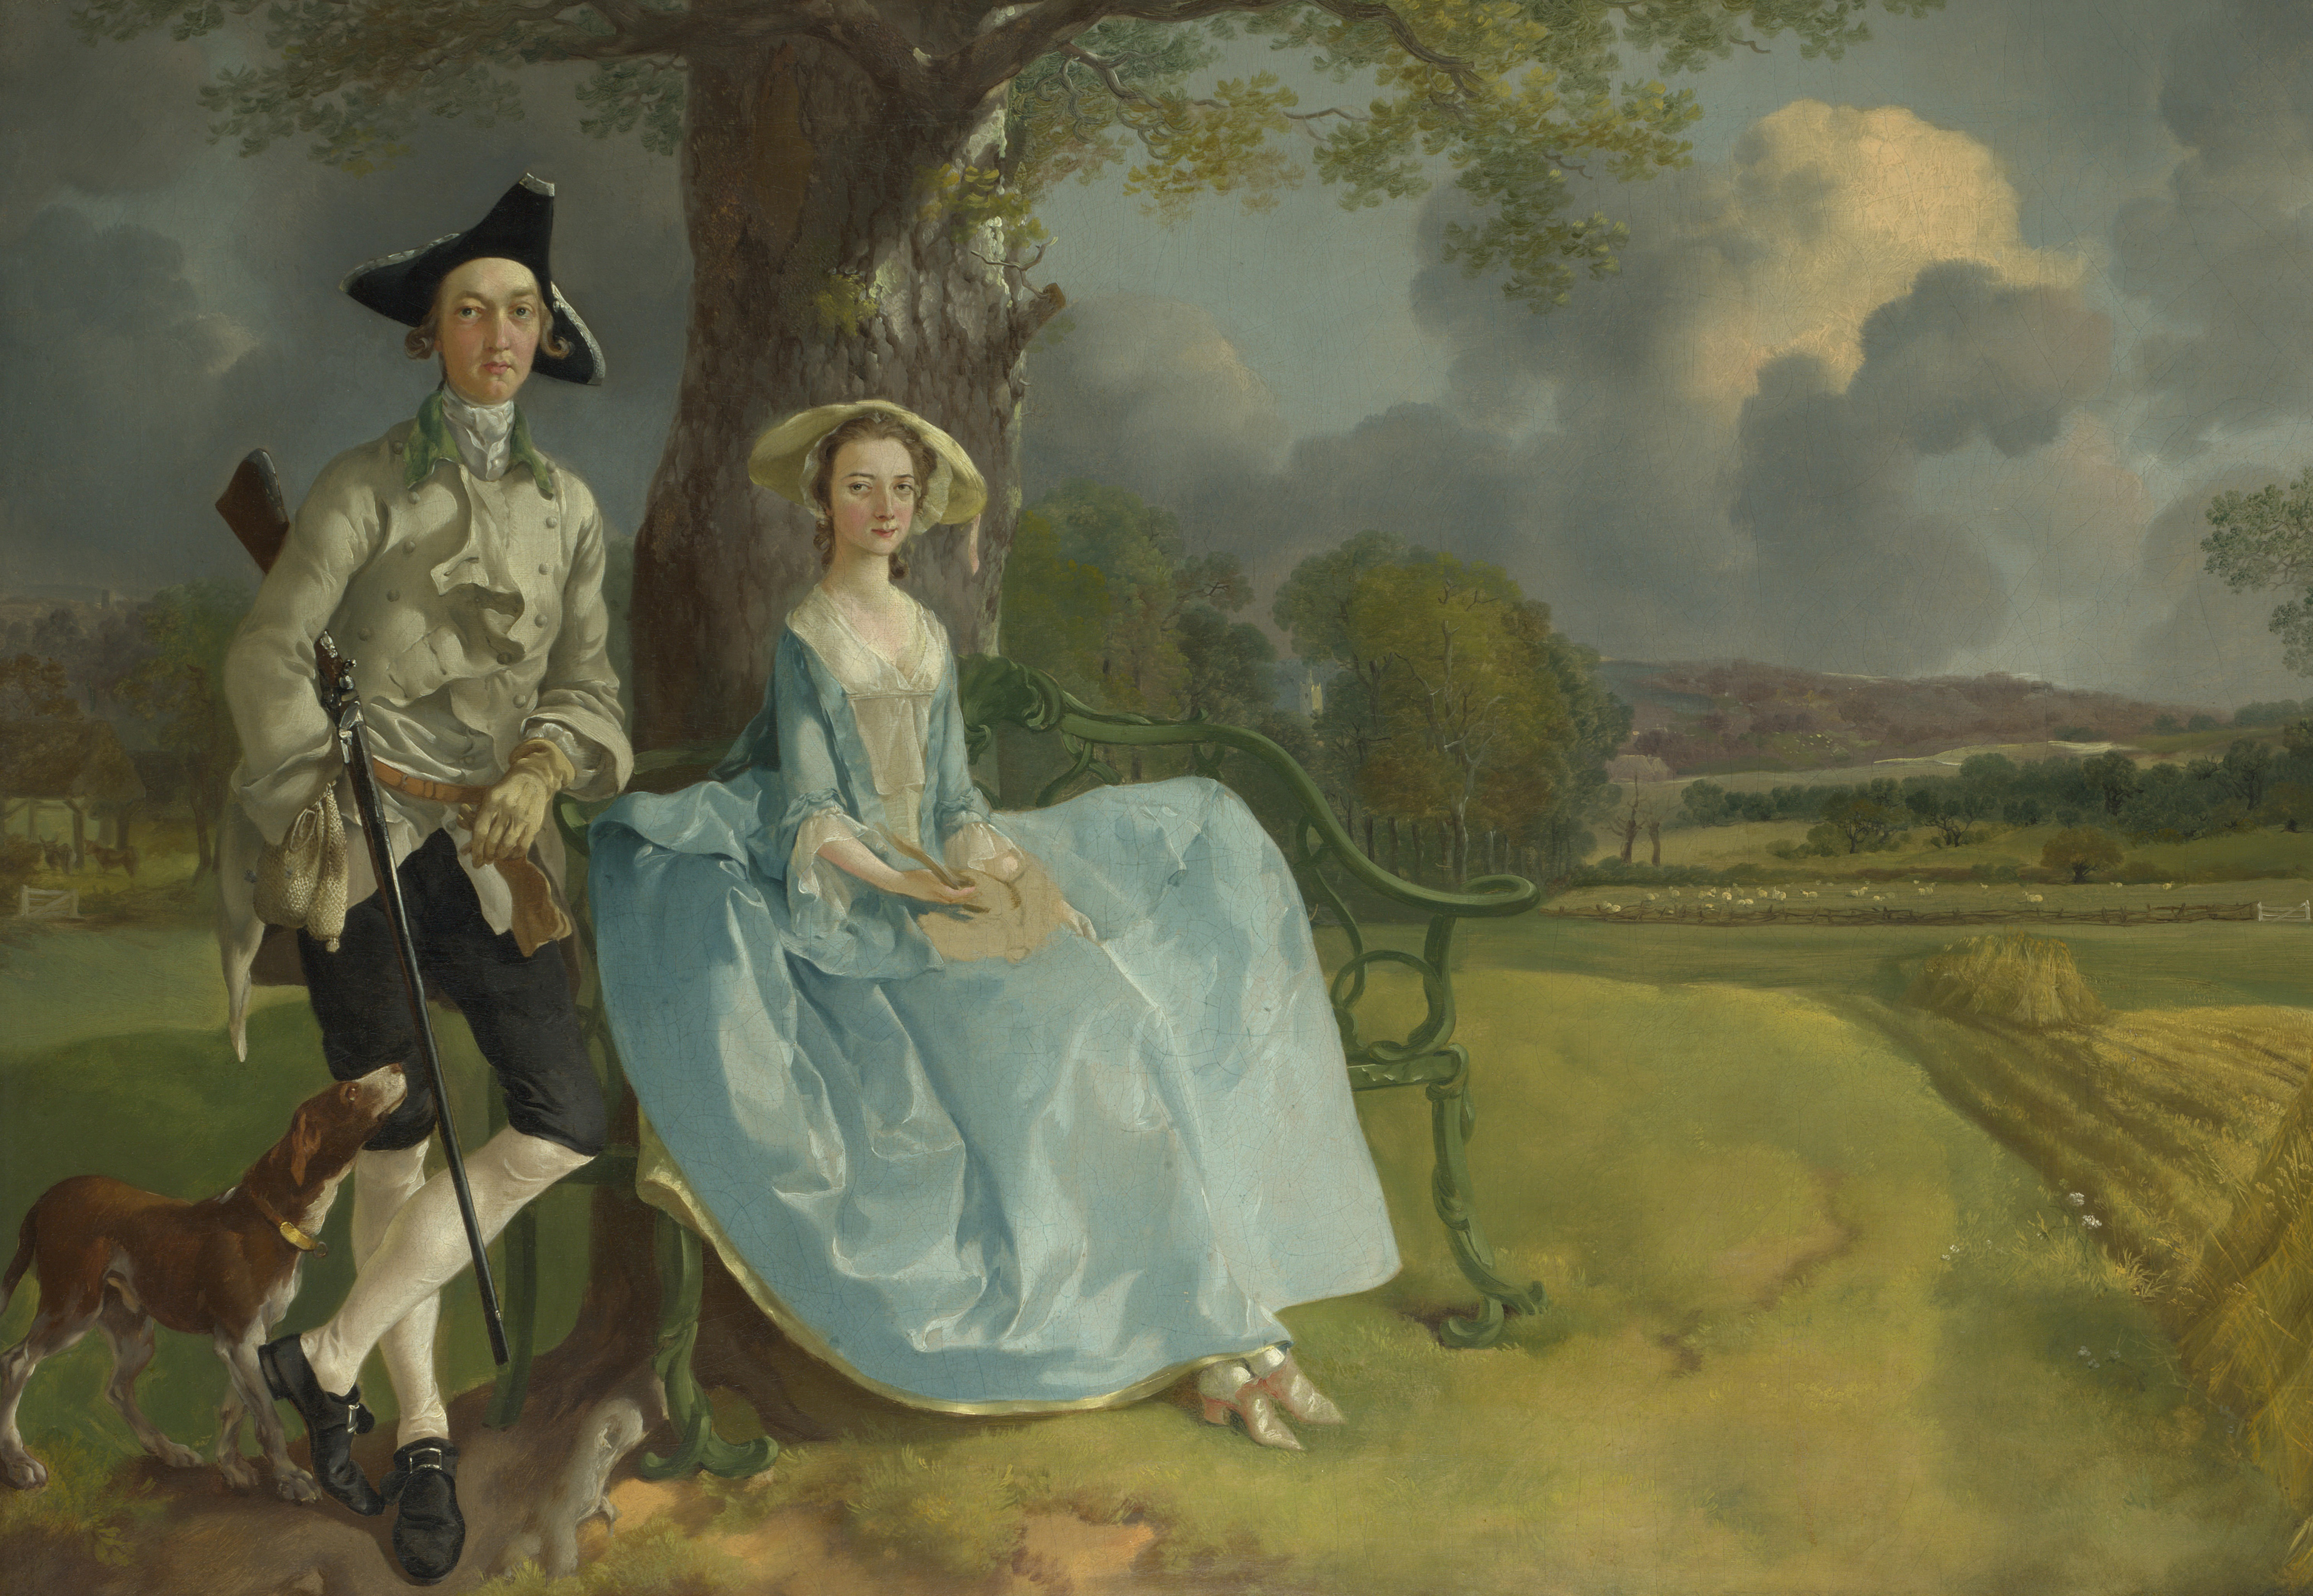 Painting of a couple in the countryside